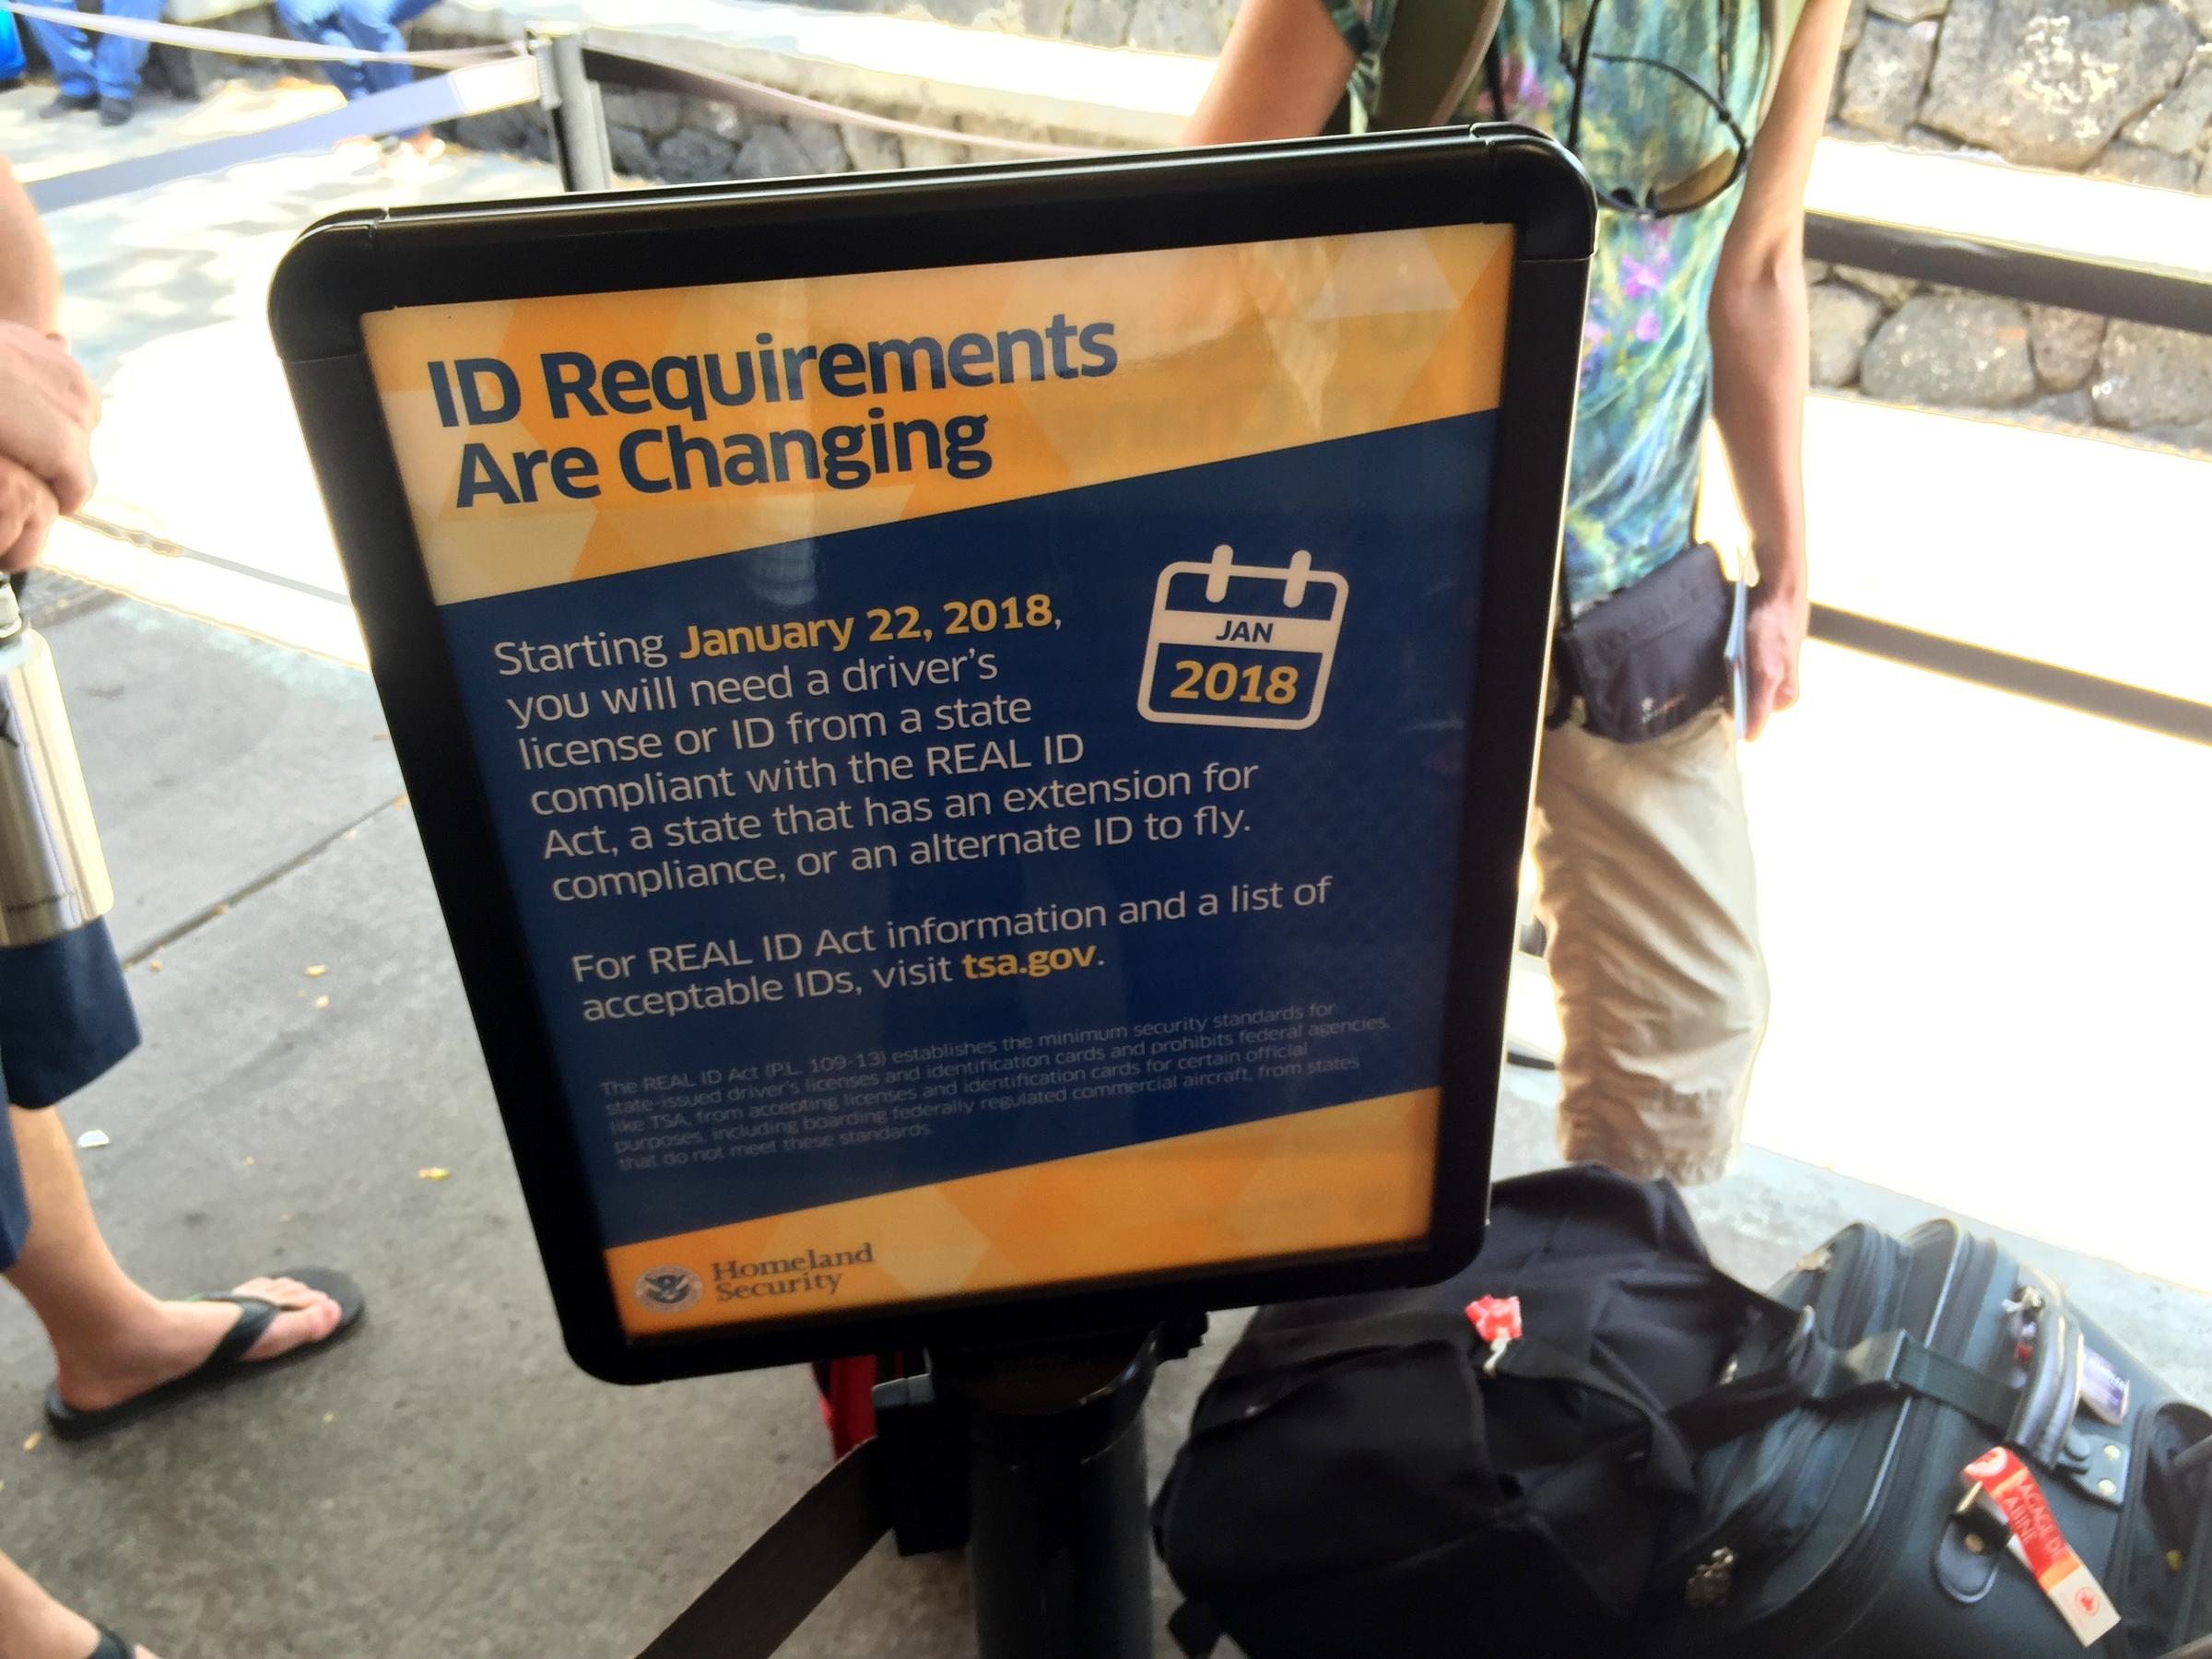 Signs Like This One In Kona, Hawaii, Are Popping Up At Tsa Airport Security